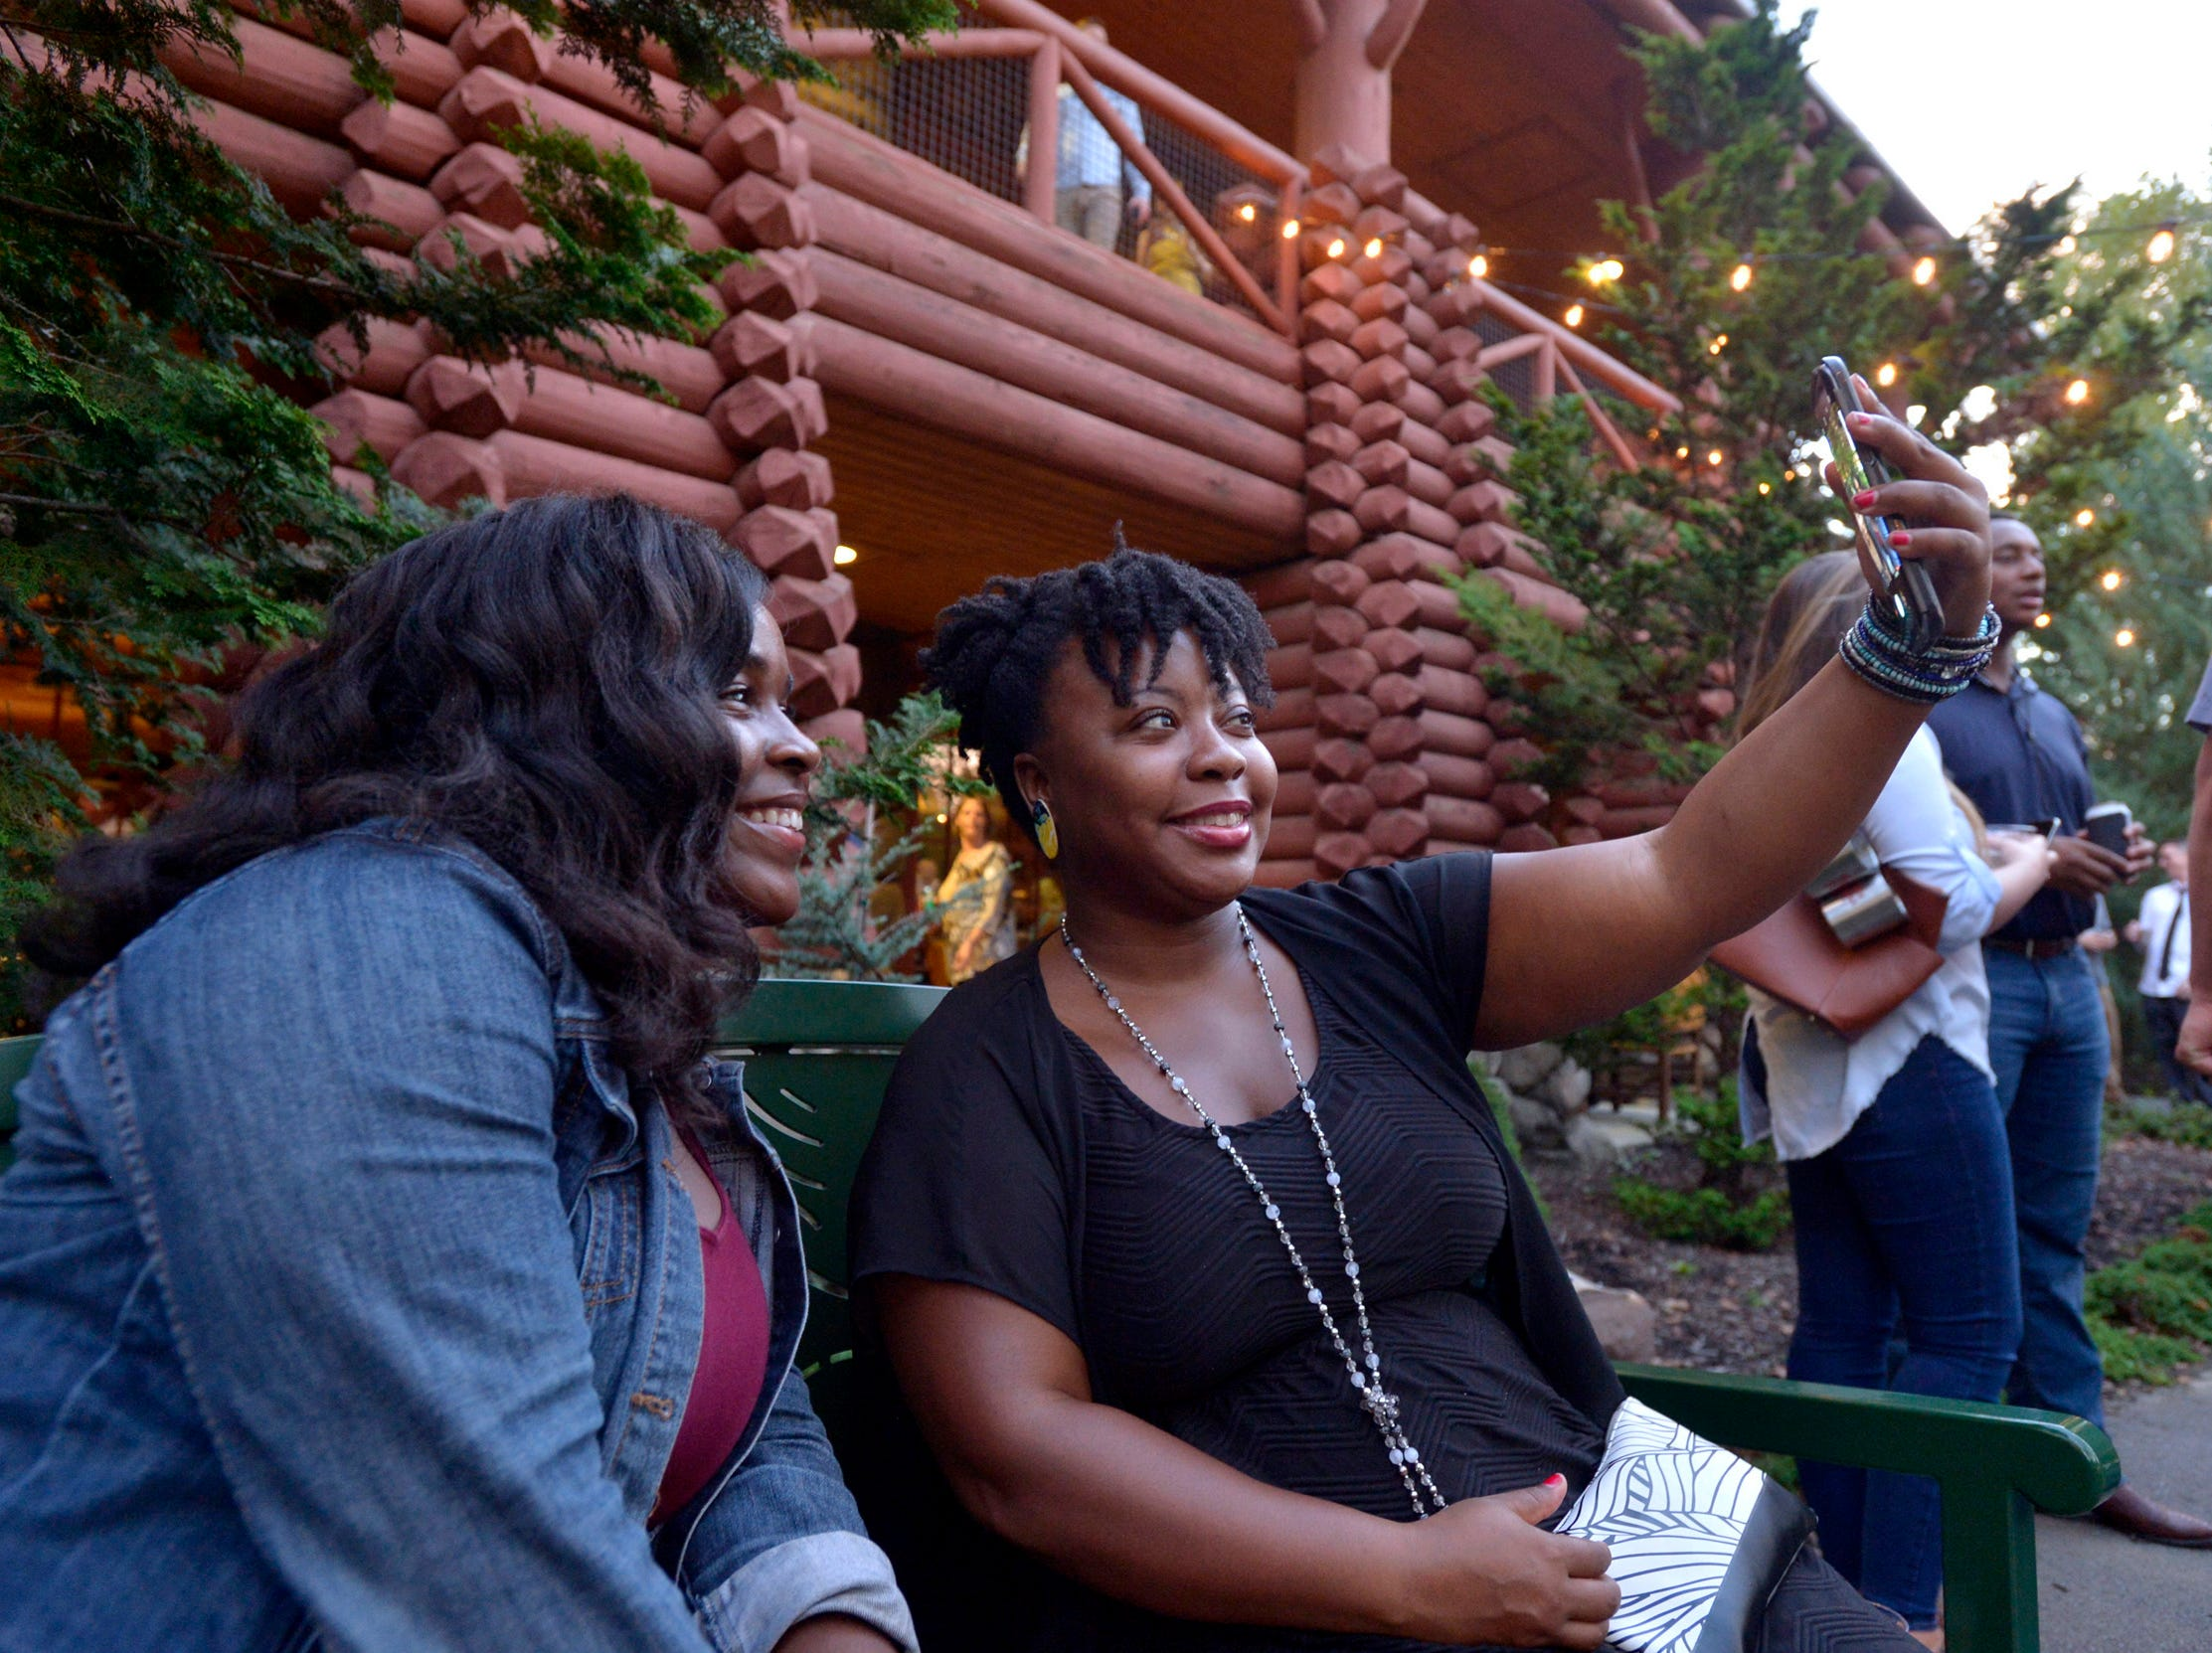 September 13, 2018 - Hannaan Ester, left, and Kapriskie Mack take a selfie during the 2018 Memphis Most awards party at Teton Trek in the Memphis Zoo. (Brandon Dill for The Commercial Appeal)